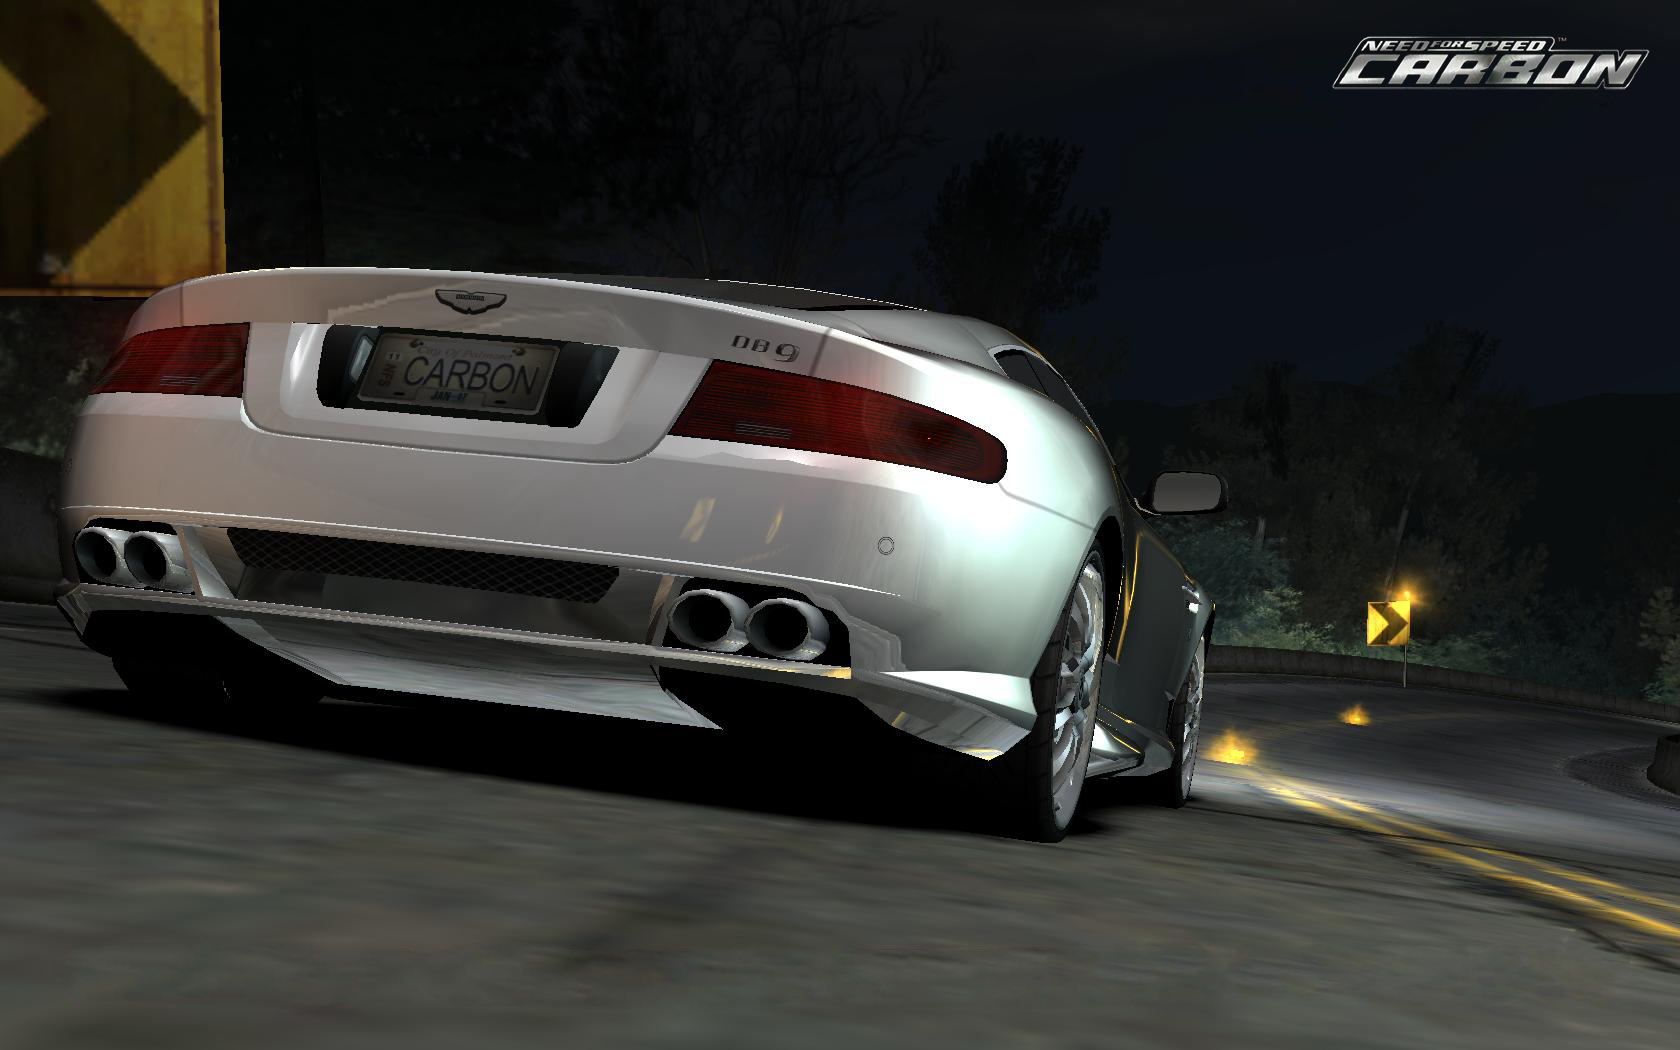 Aston martin DB9 need HD Wallpaper